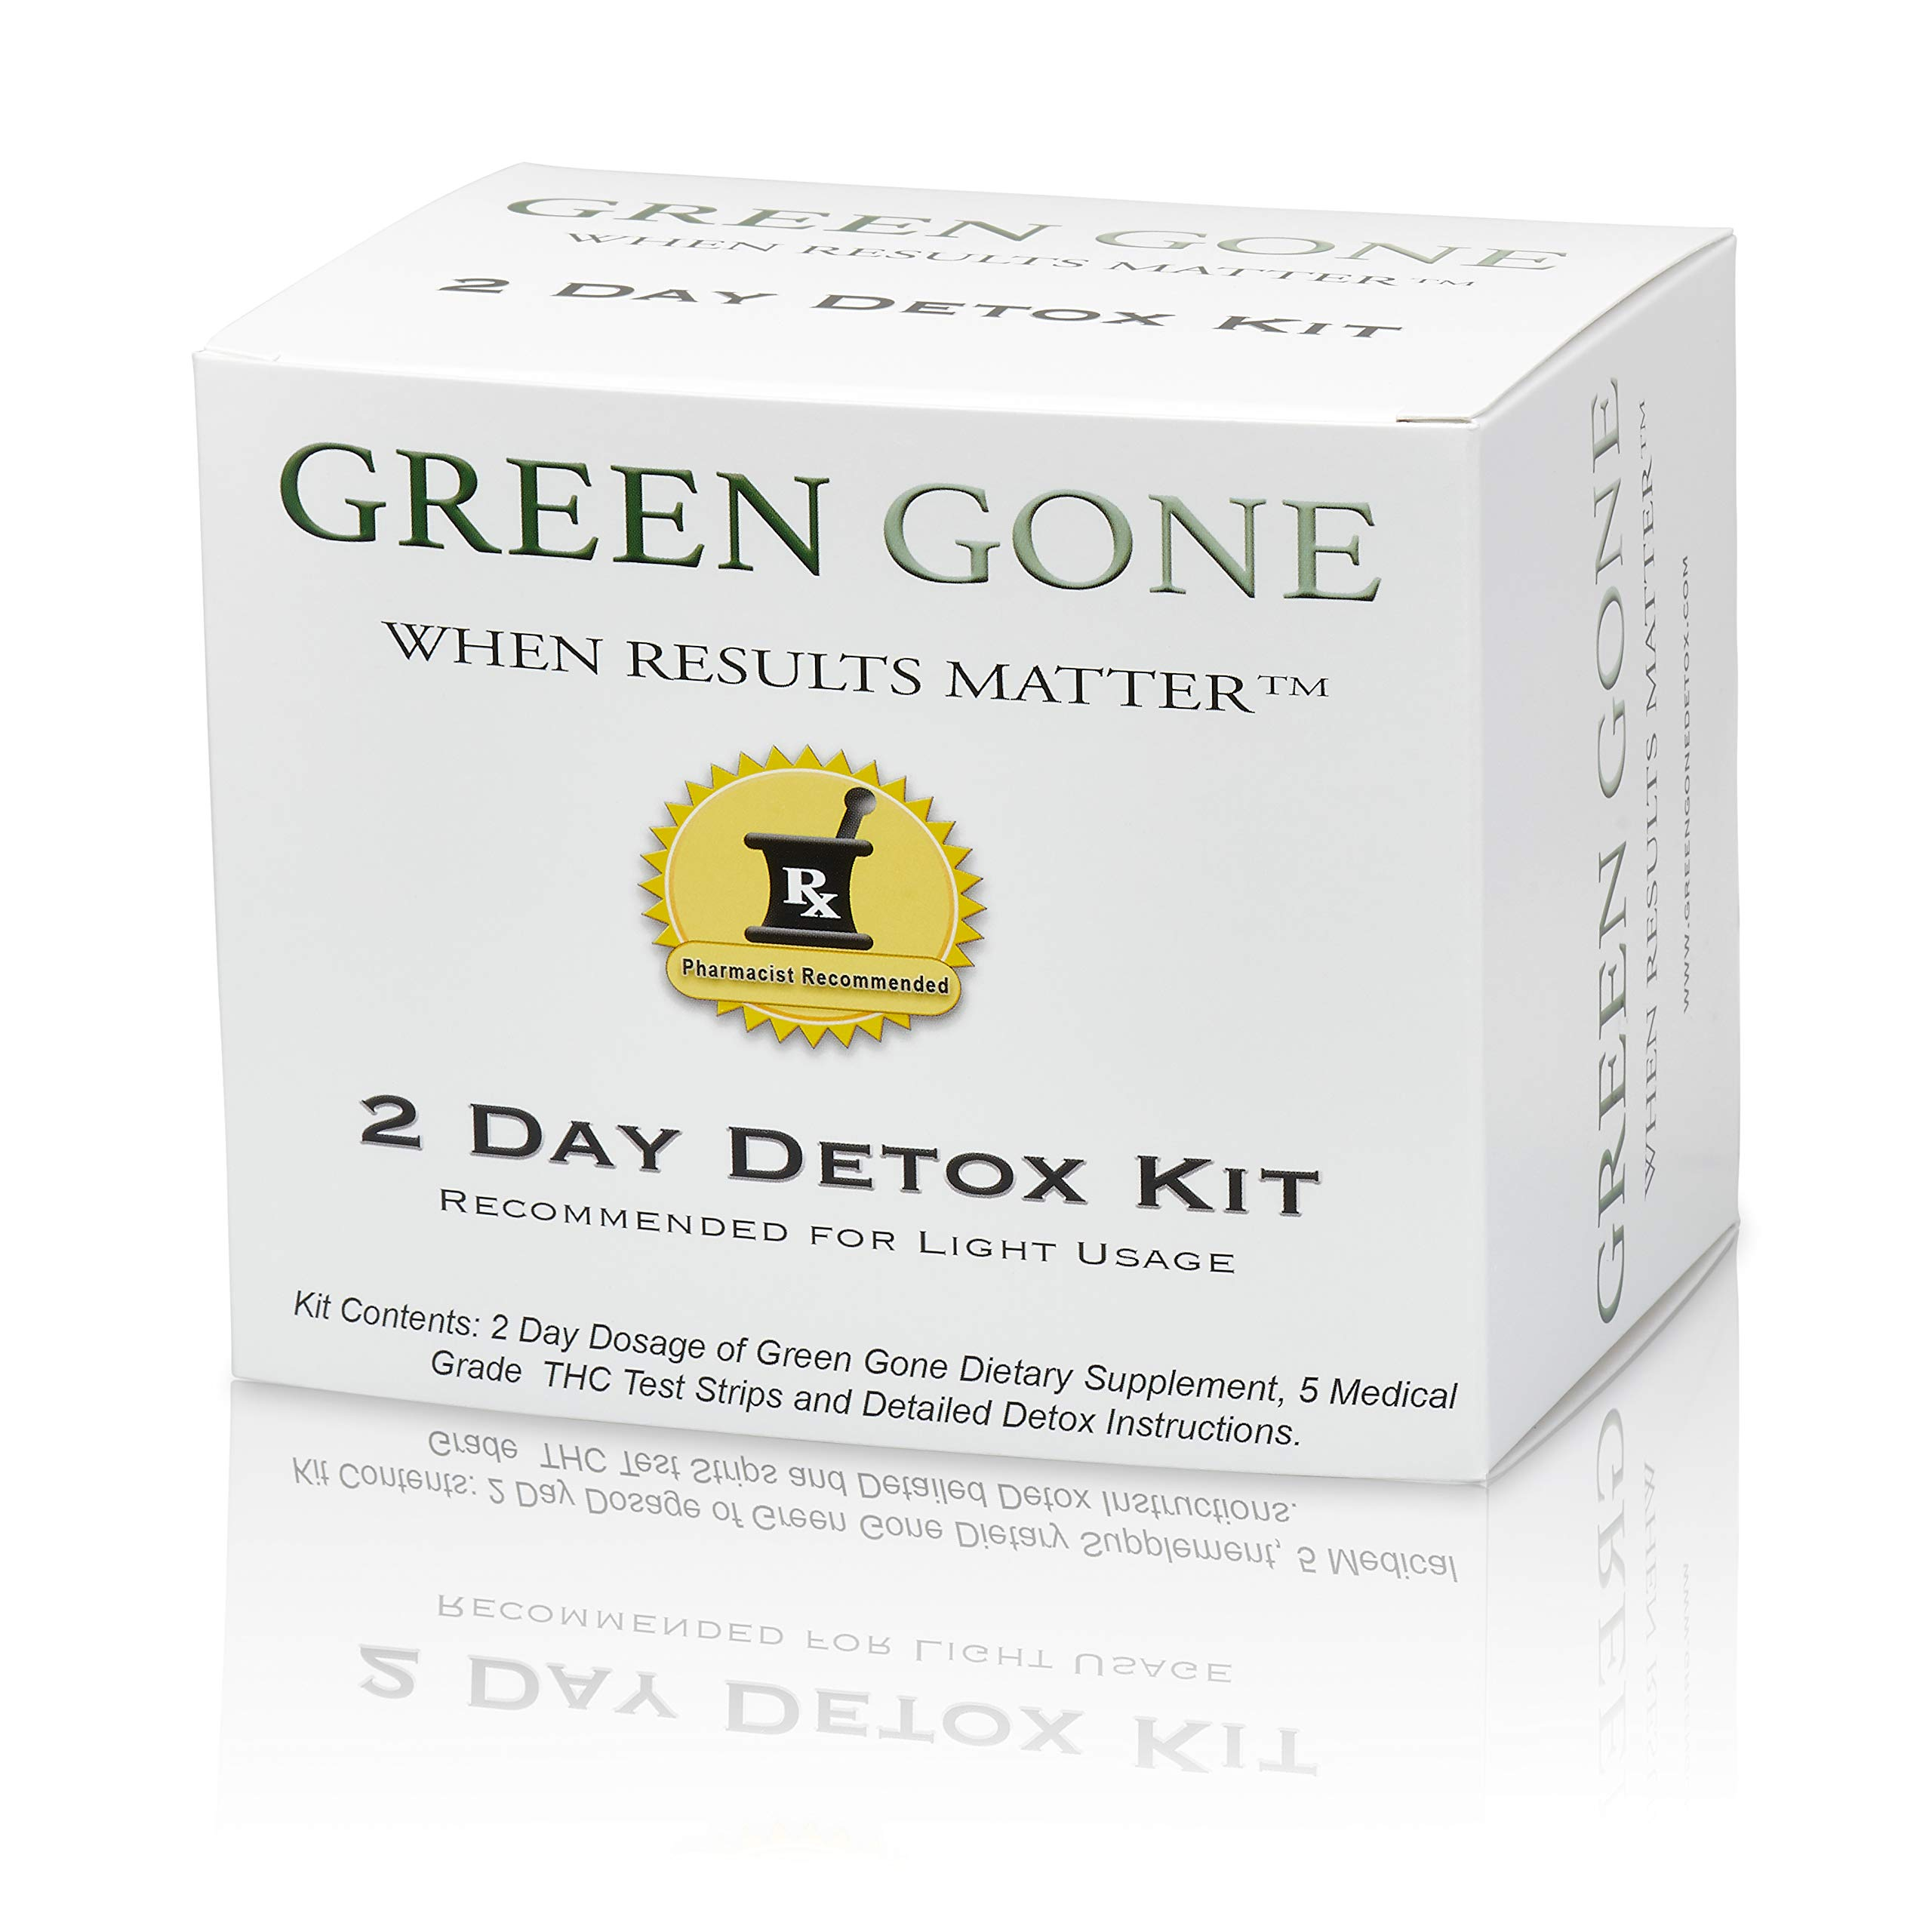 Green Gone 2 Day THC (Marijuana) Detox Kit - Permanent Cleanse, (for Light Usage) with 5 THC Test Strips!